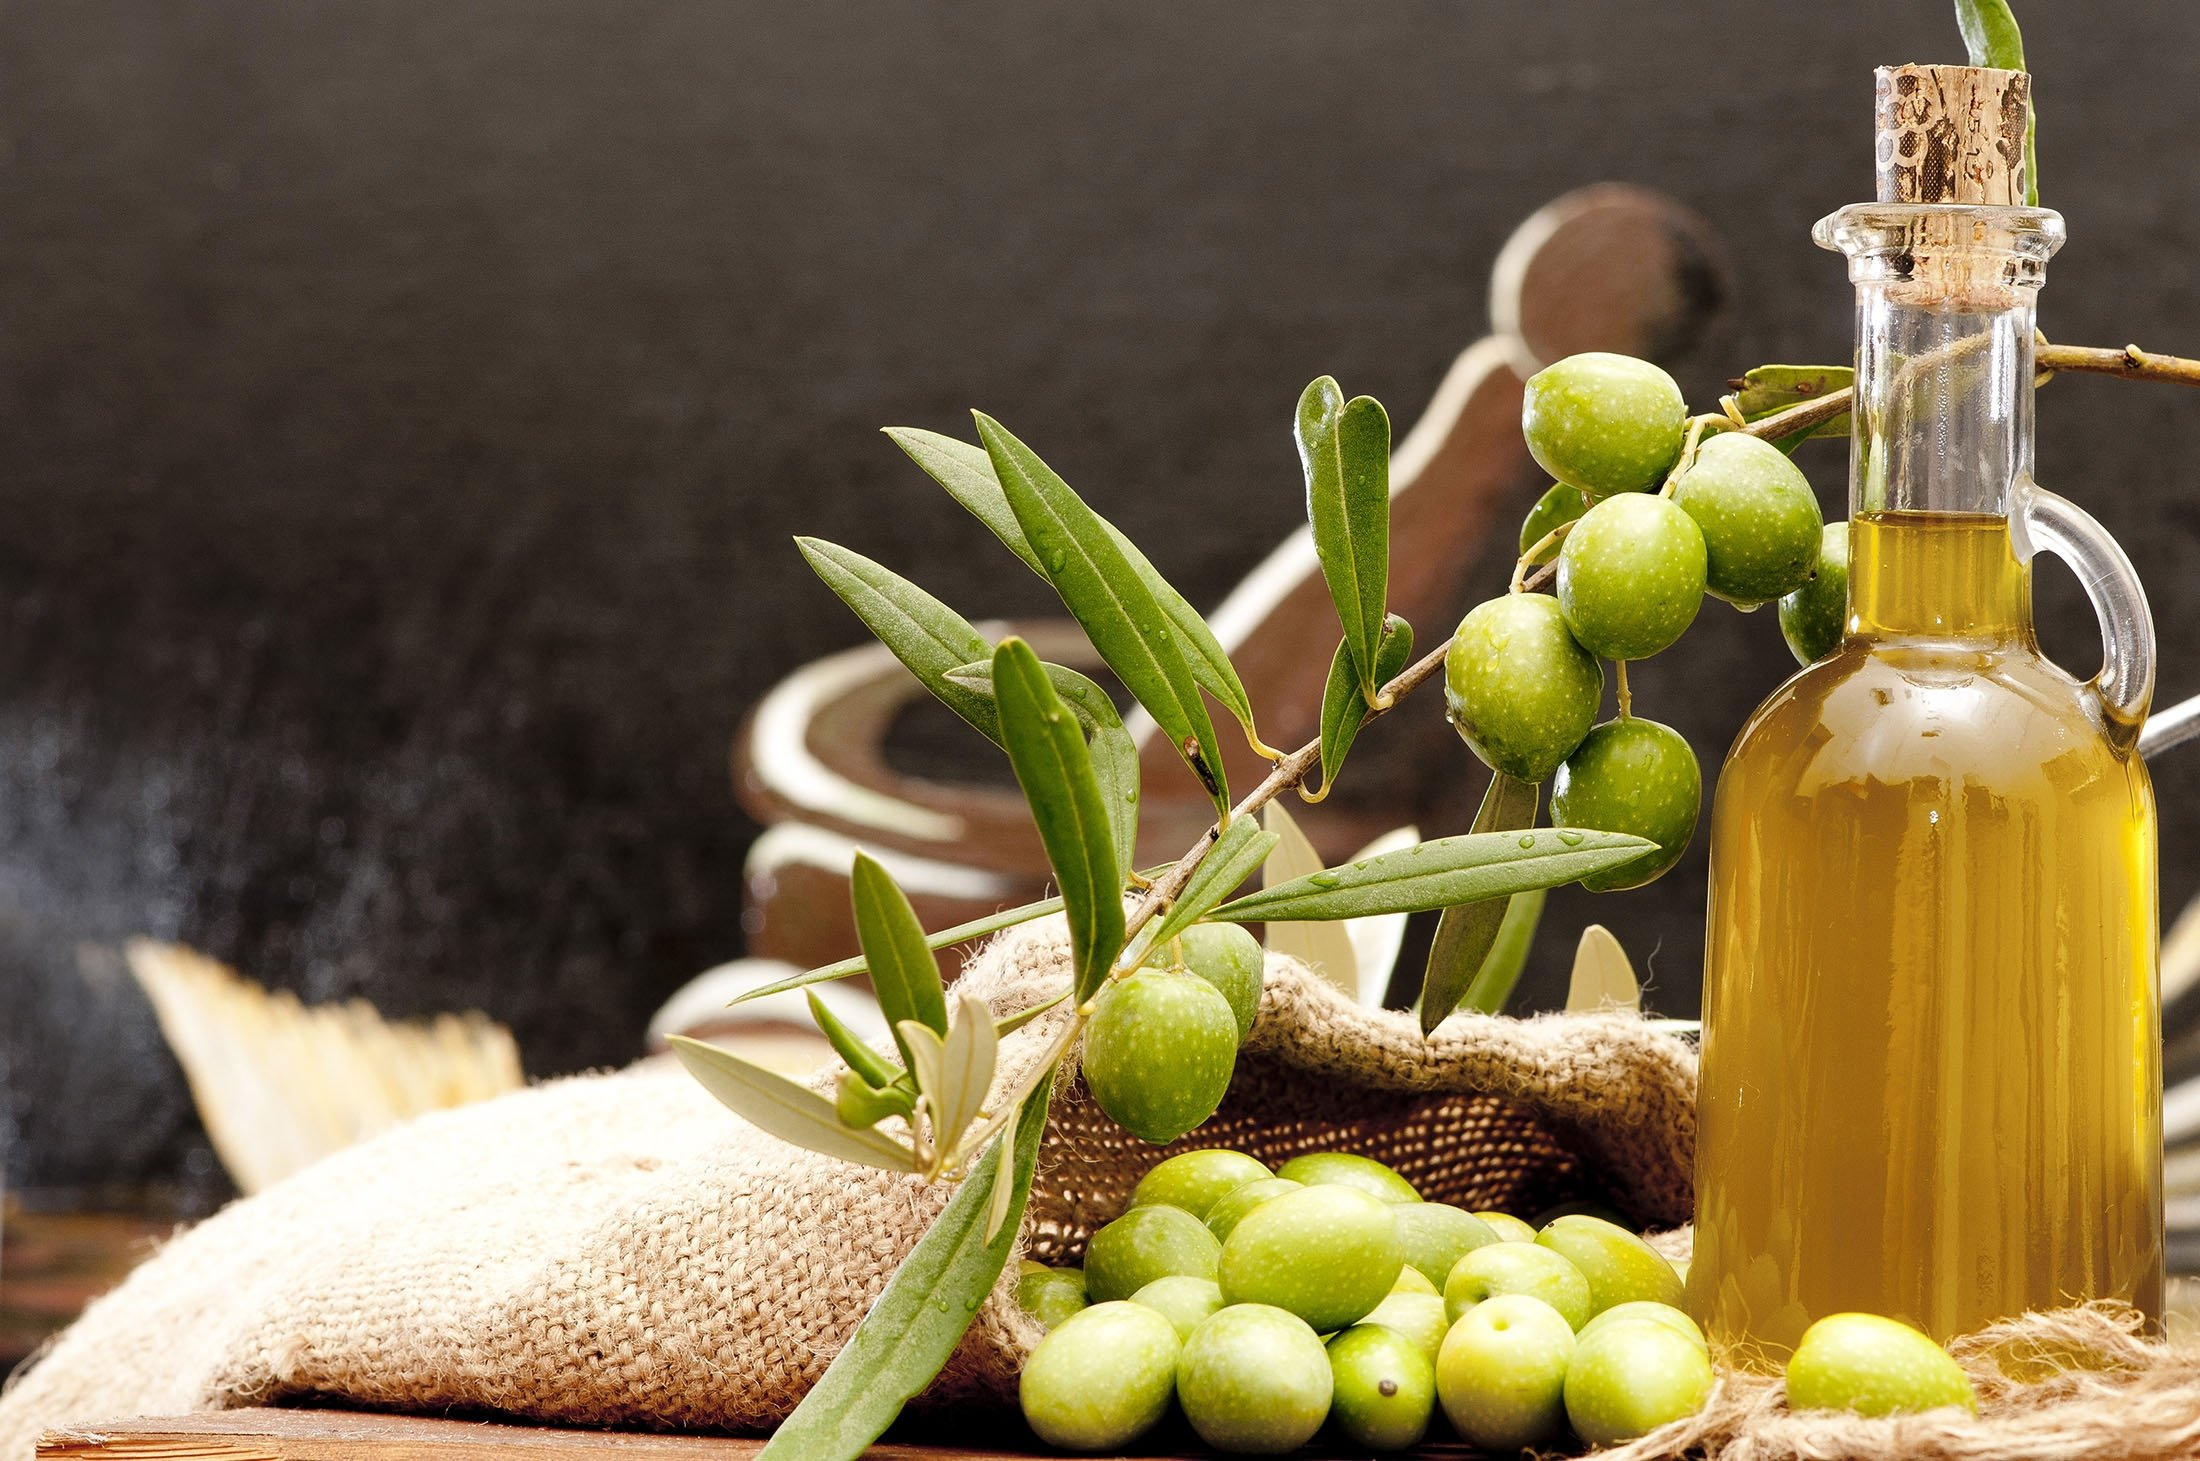 Extra virgin olive oil has been shown to help reduce risk for heart disease. (Shutterstock Photo)